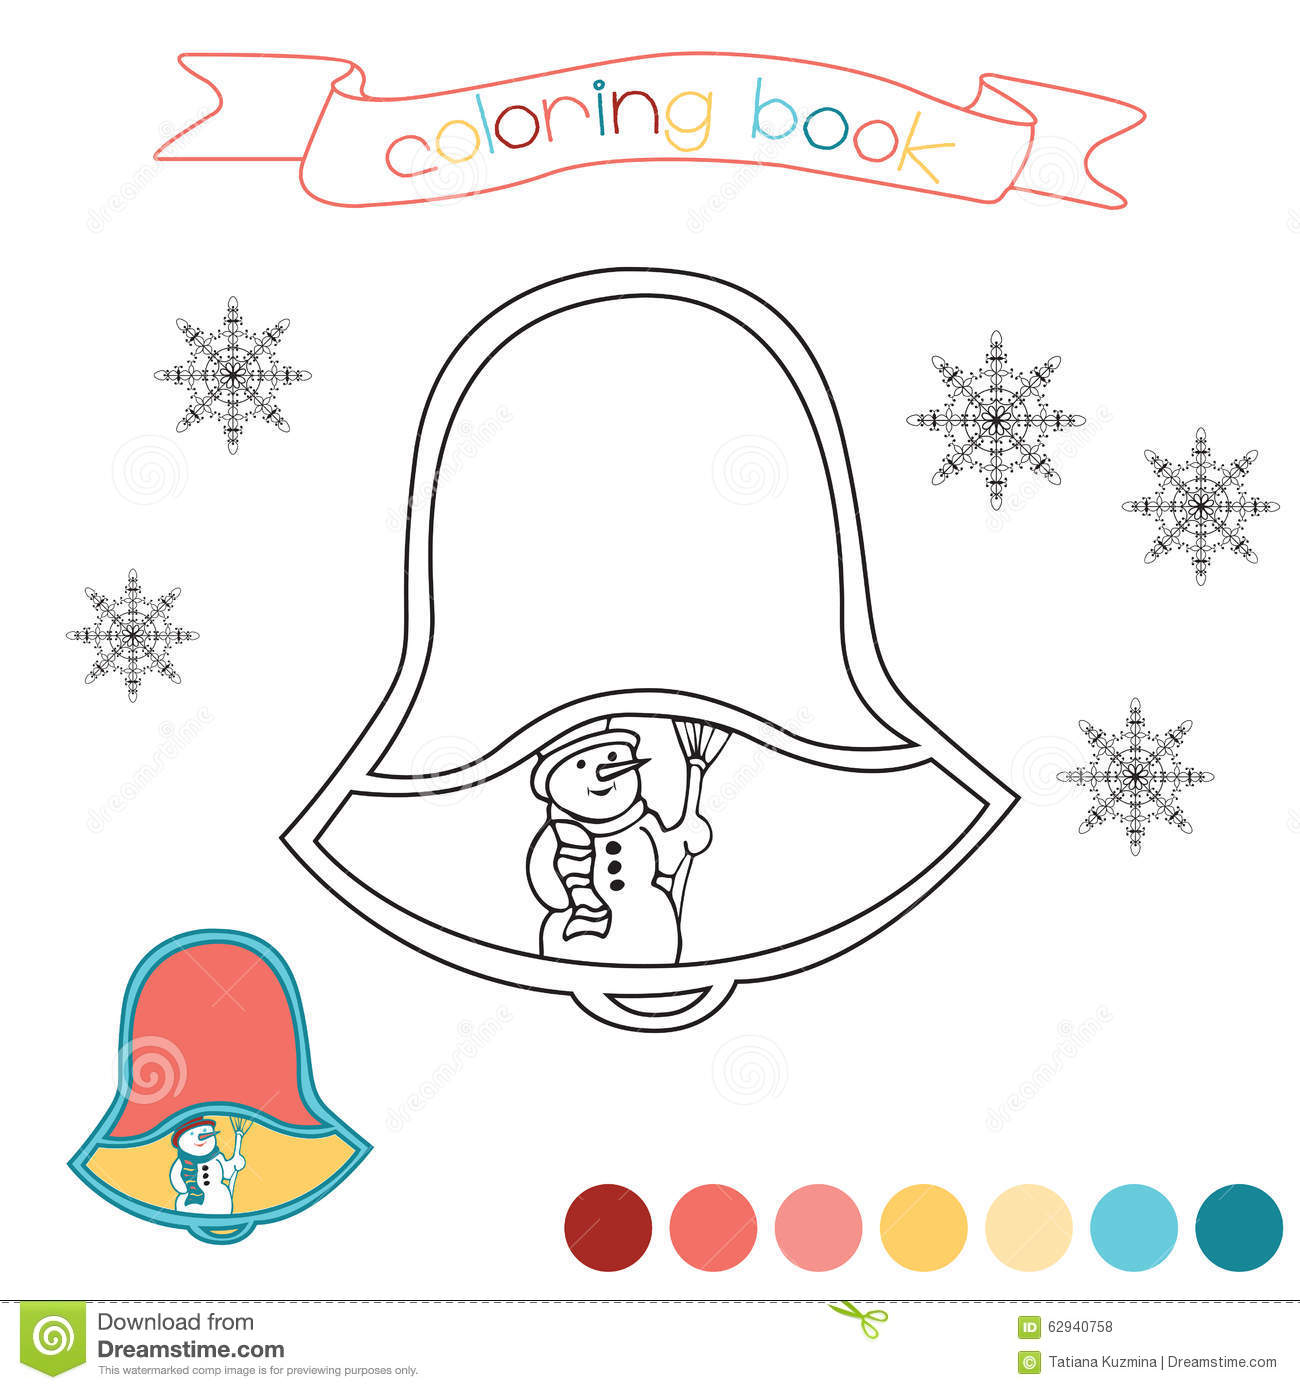 Coloring Book With Christmas Bell And Hand Drawn Snowman Winter Scene In Illustration Stock